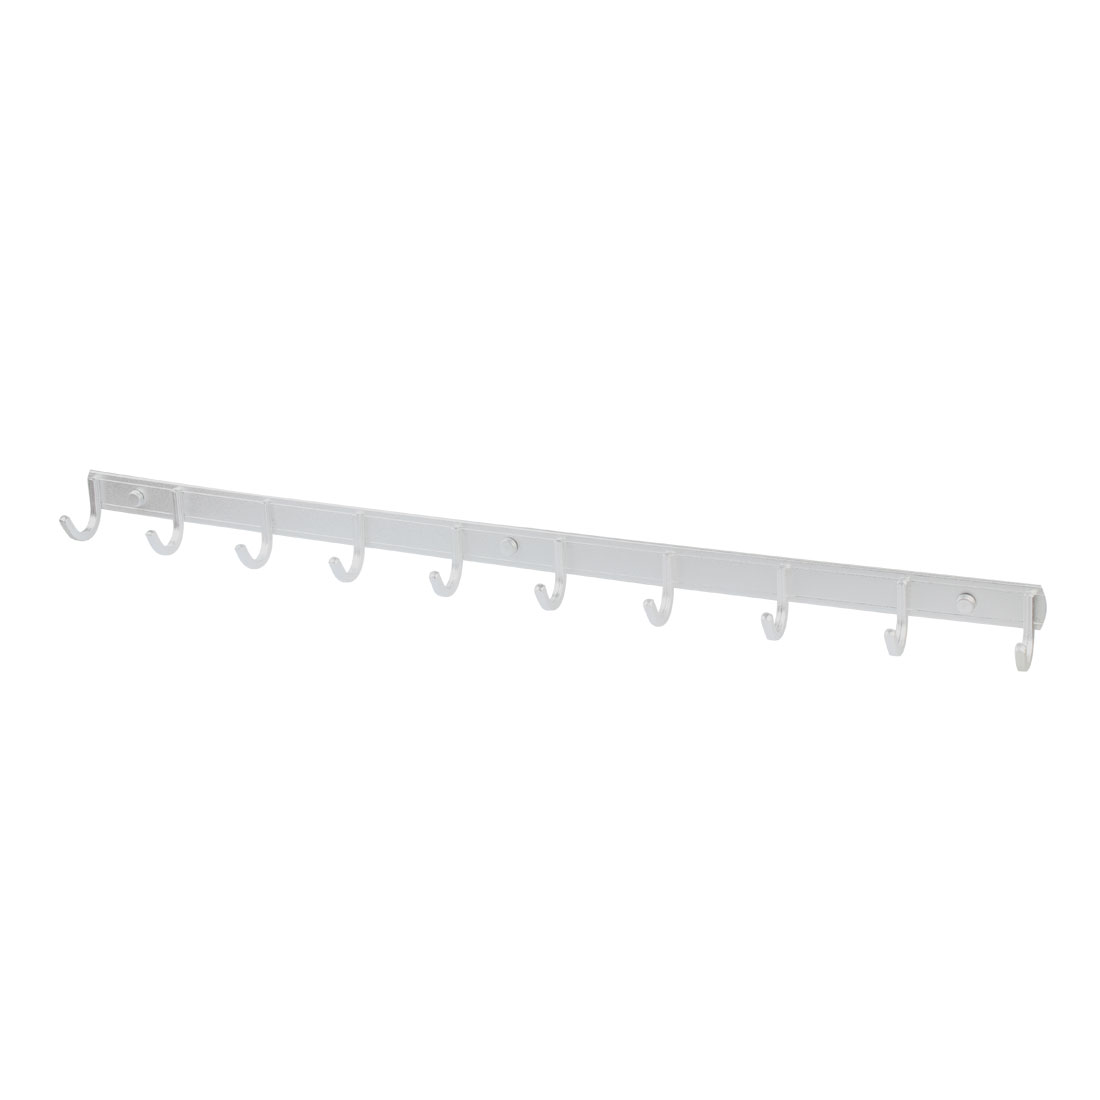 Household Alloy Wall Mount 10 Hooks Towel Coat Hat Rack Hanger Silver Tone 75cm Long